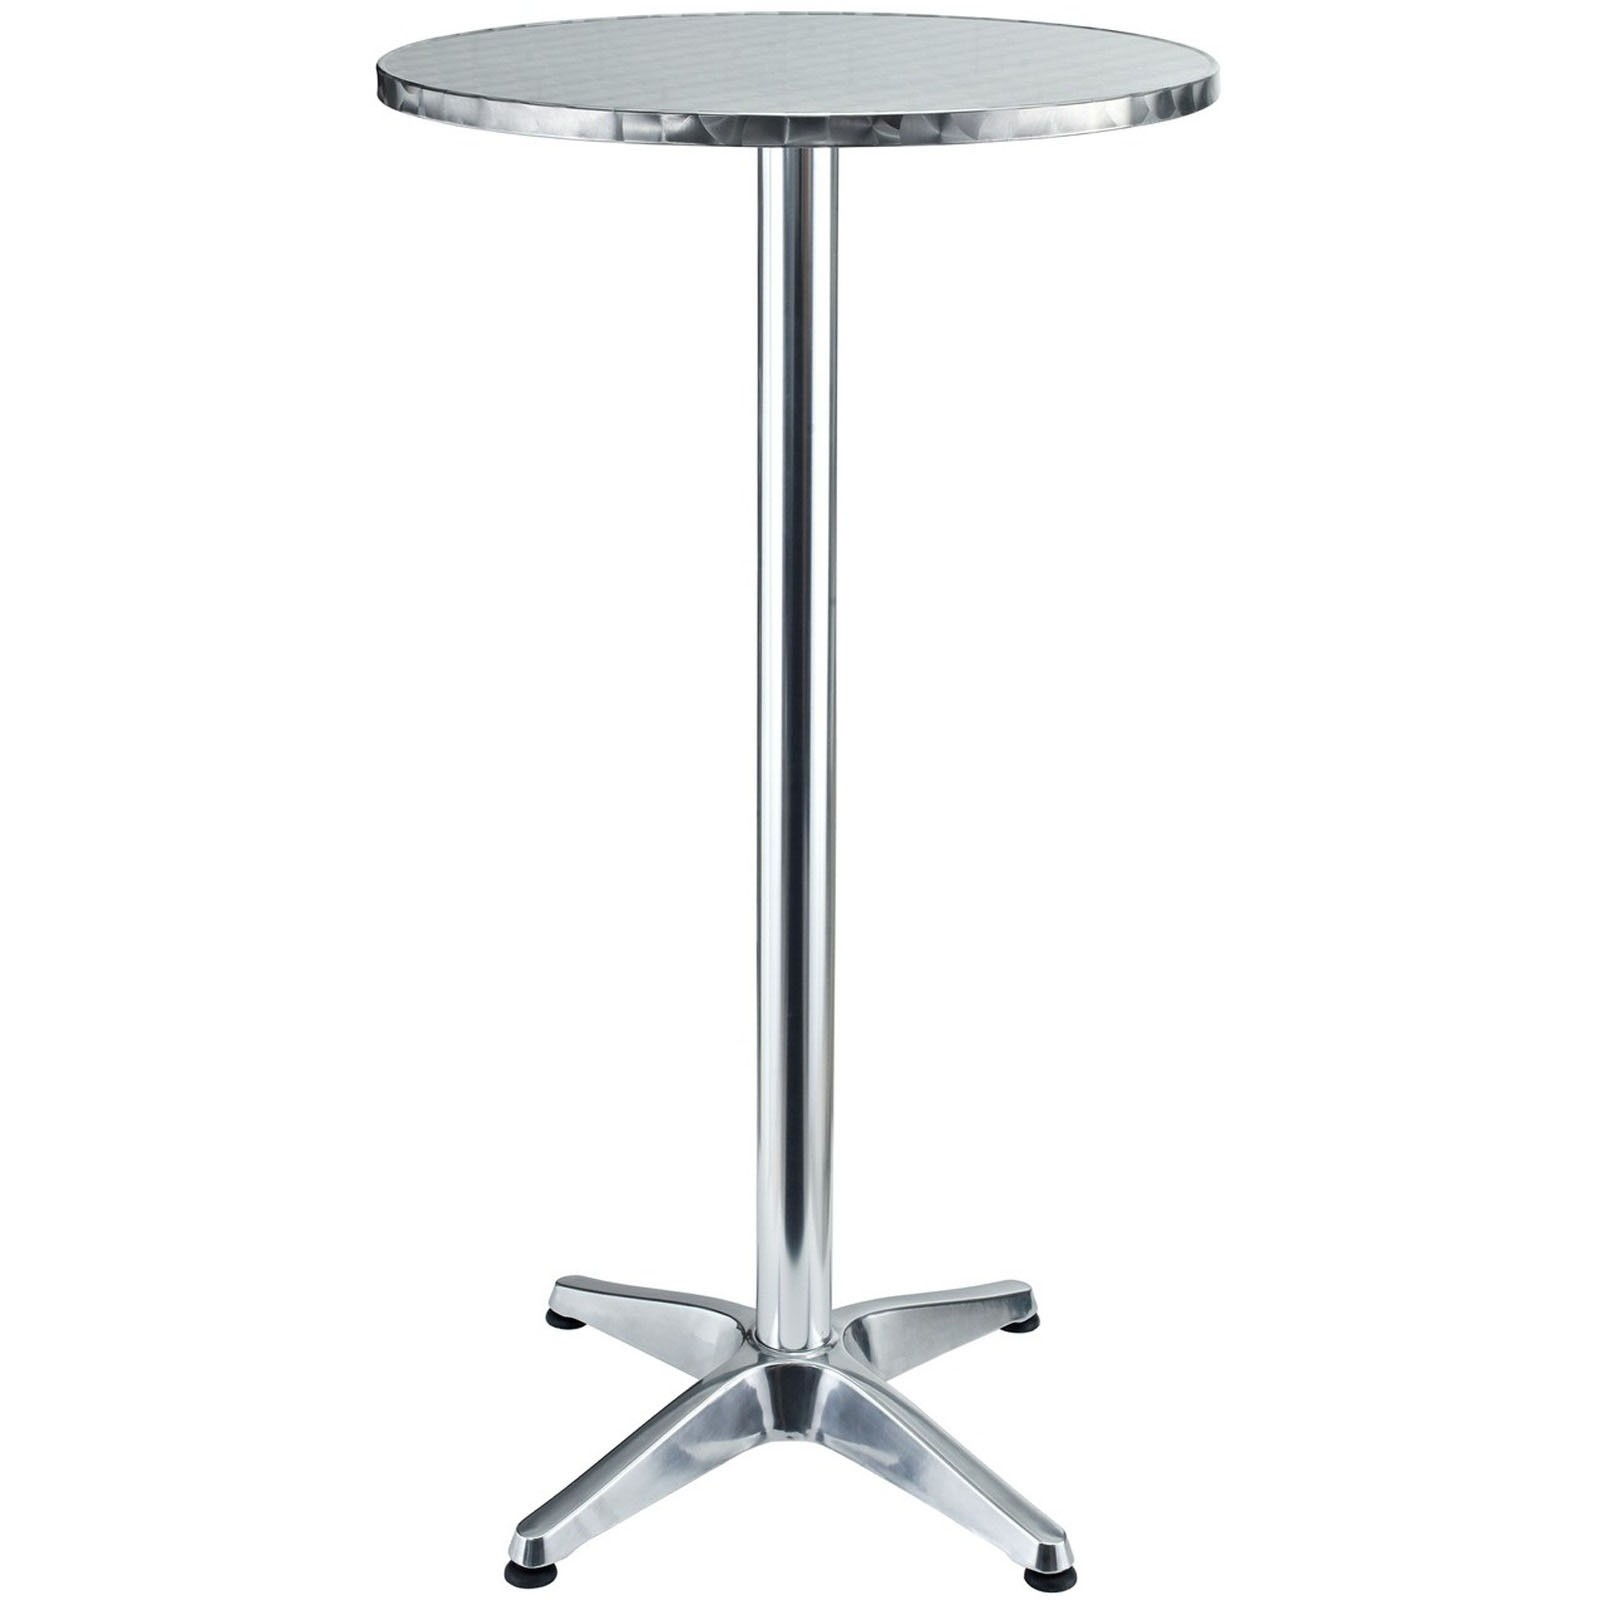 tall round bar table and chairs rolling chair stand tables a space saving dining furniture for small